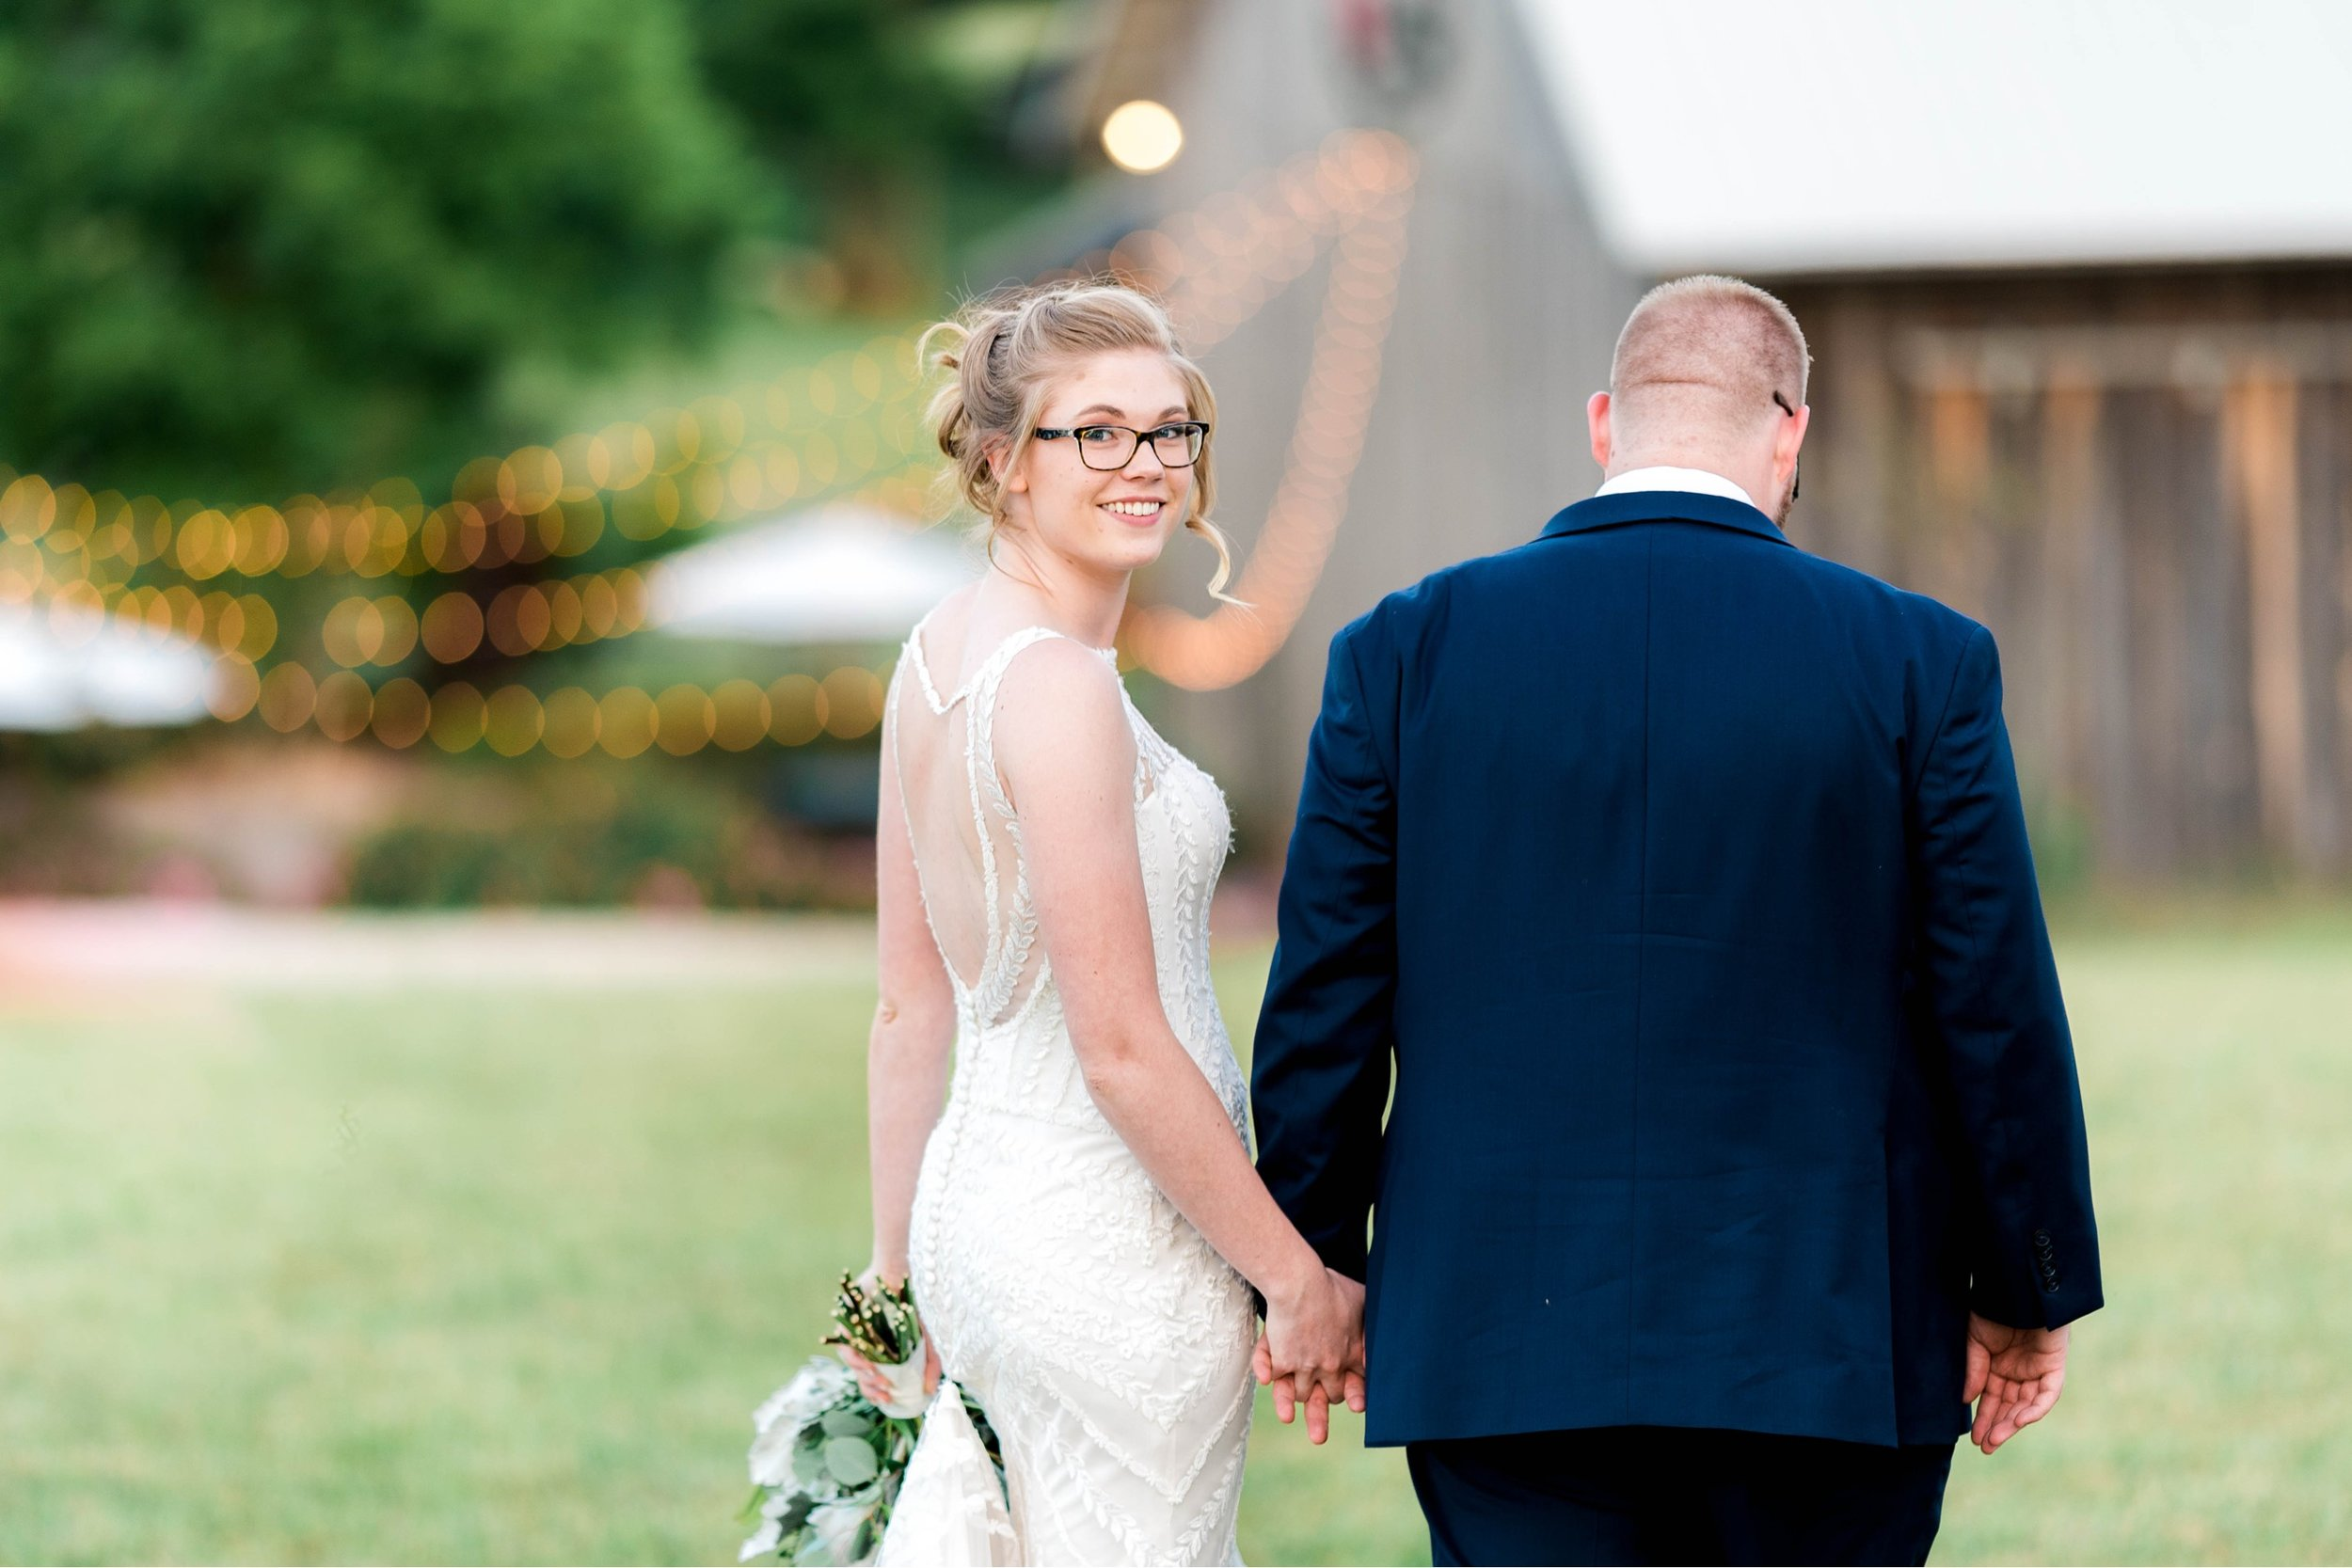 SorellaFarms_VirginiaWeddingPhotographer_BarnWedding_Lynchburgweddingphotographer_DanielleTyler 36.jpg